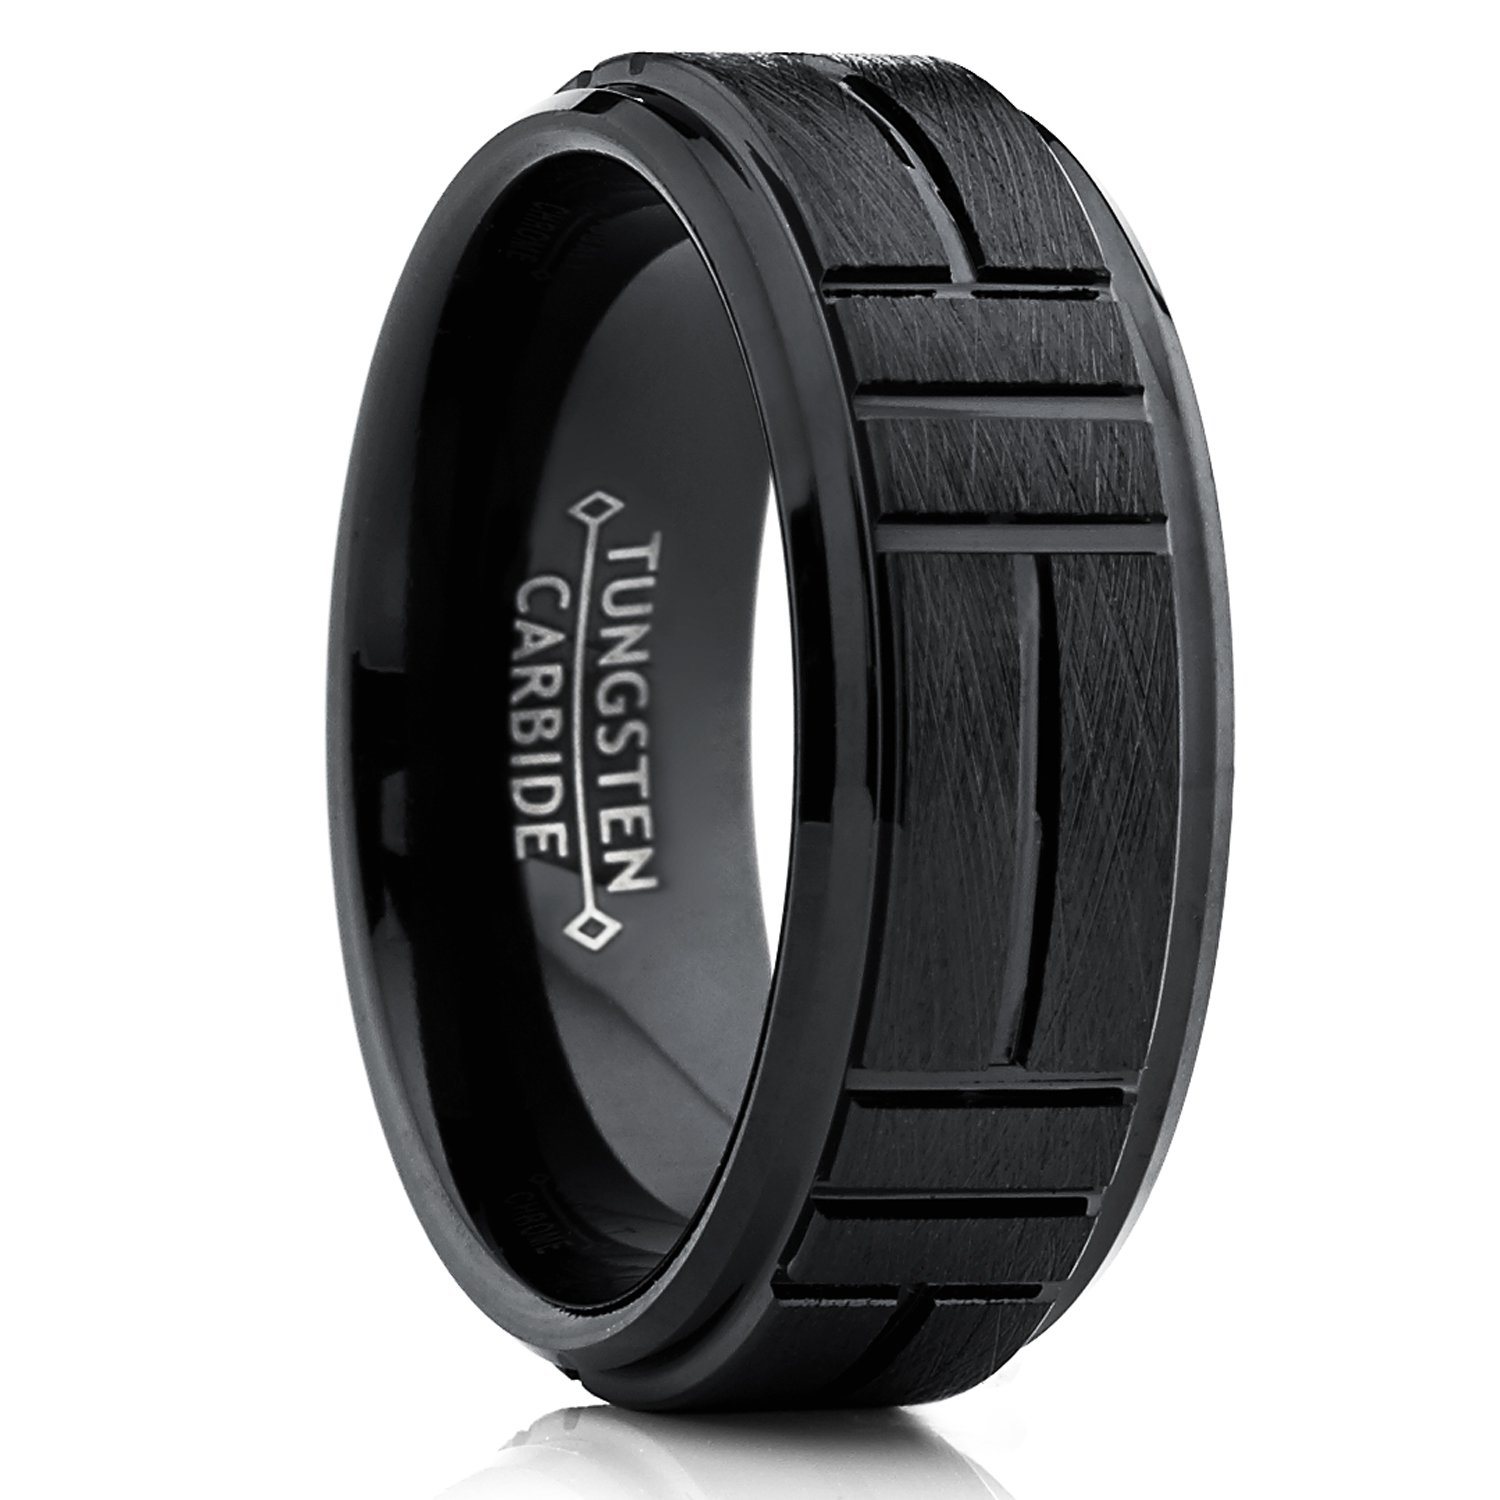 Tungsten Carbide Men's Black Textured Brushed Grooved Wedding Band Ring, Comfort Fit 8mm WCRX-1299